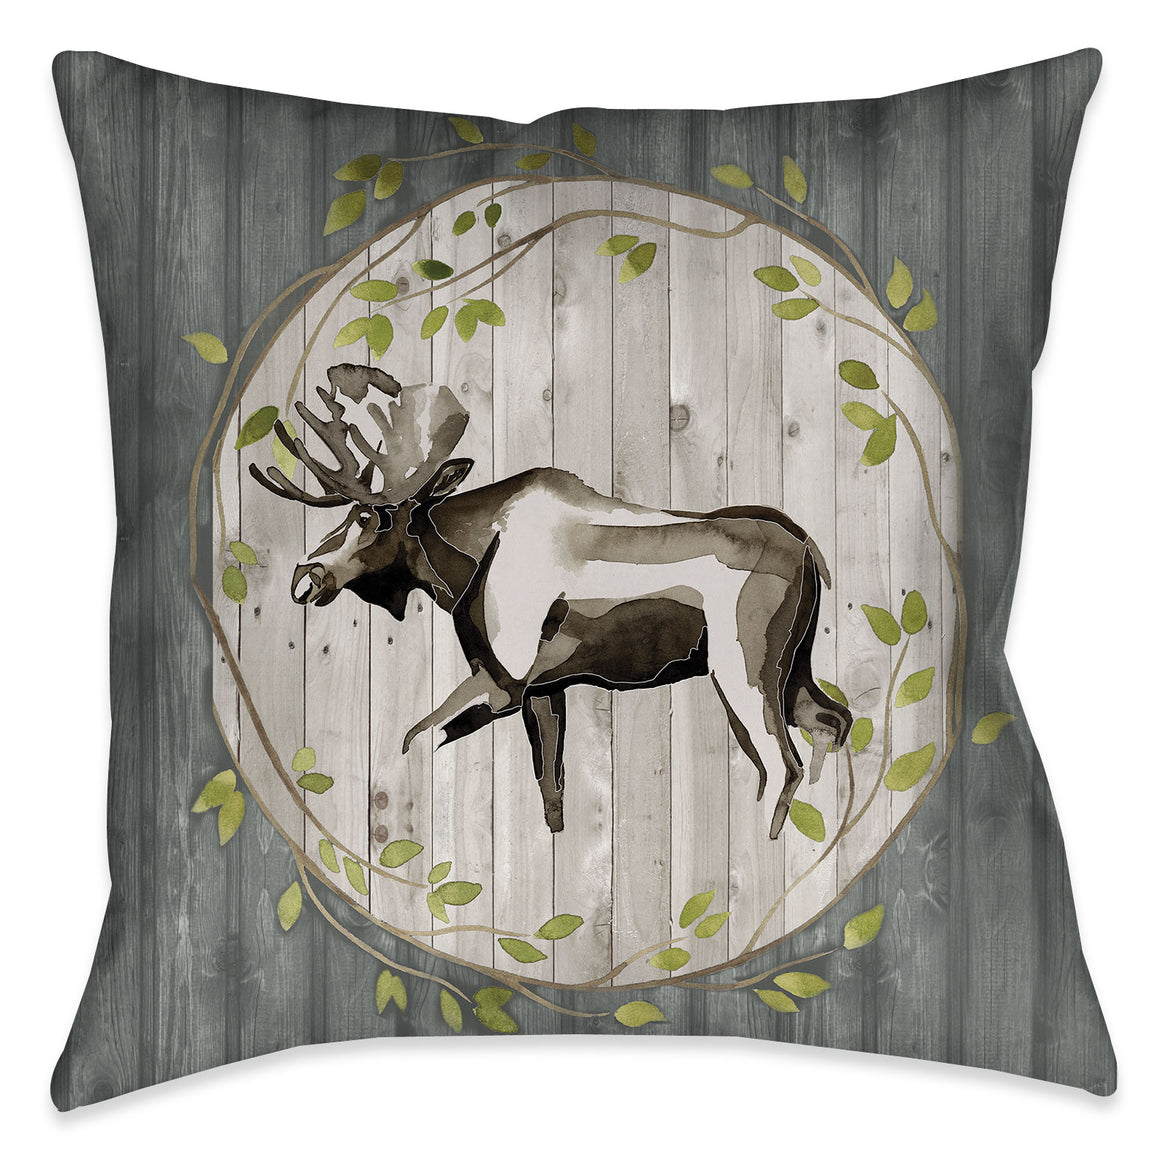 This sophisticated lodge look features a watercolor moose motif with modern design elements over a wooded texture giving it a graphic yet soft appearance. This nature-inspired pillow is sure to suit any one who has a sophisticated appreciation for nature.